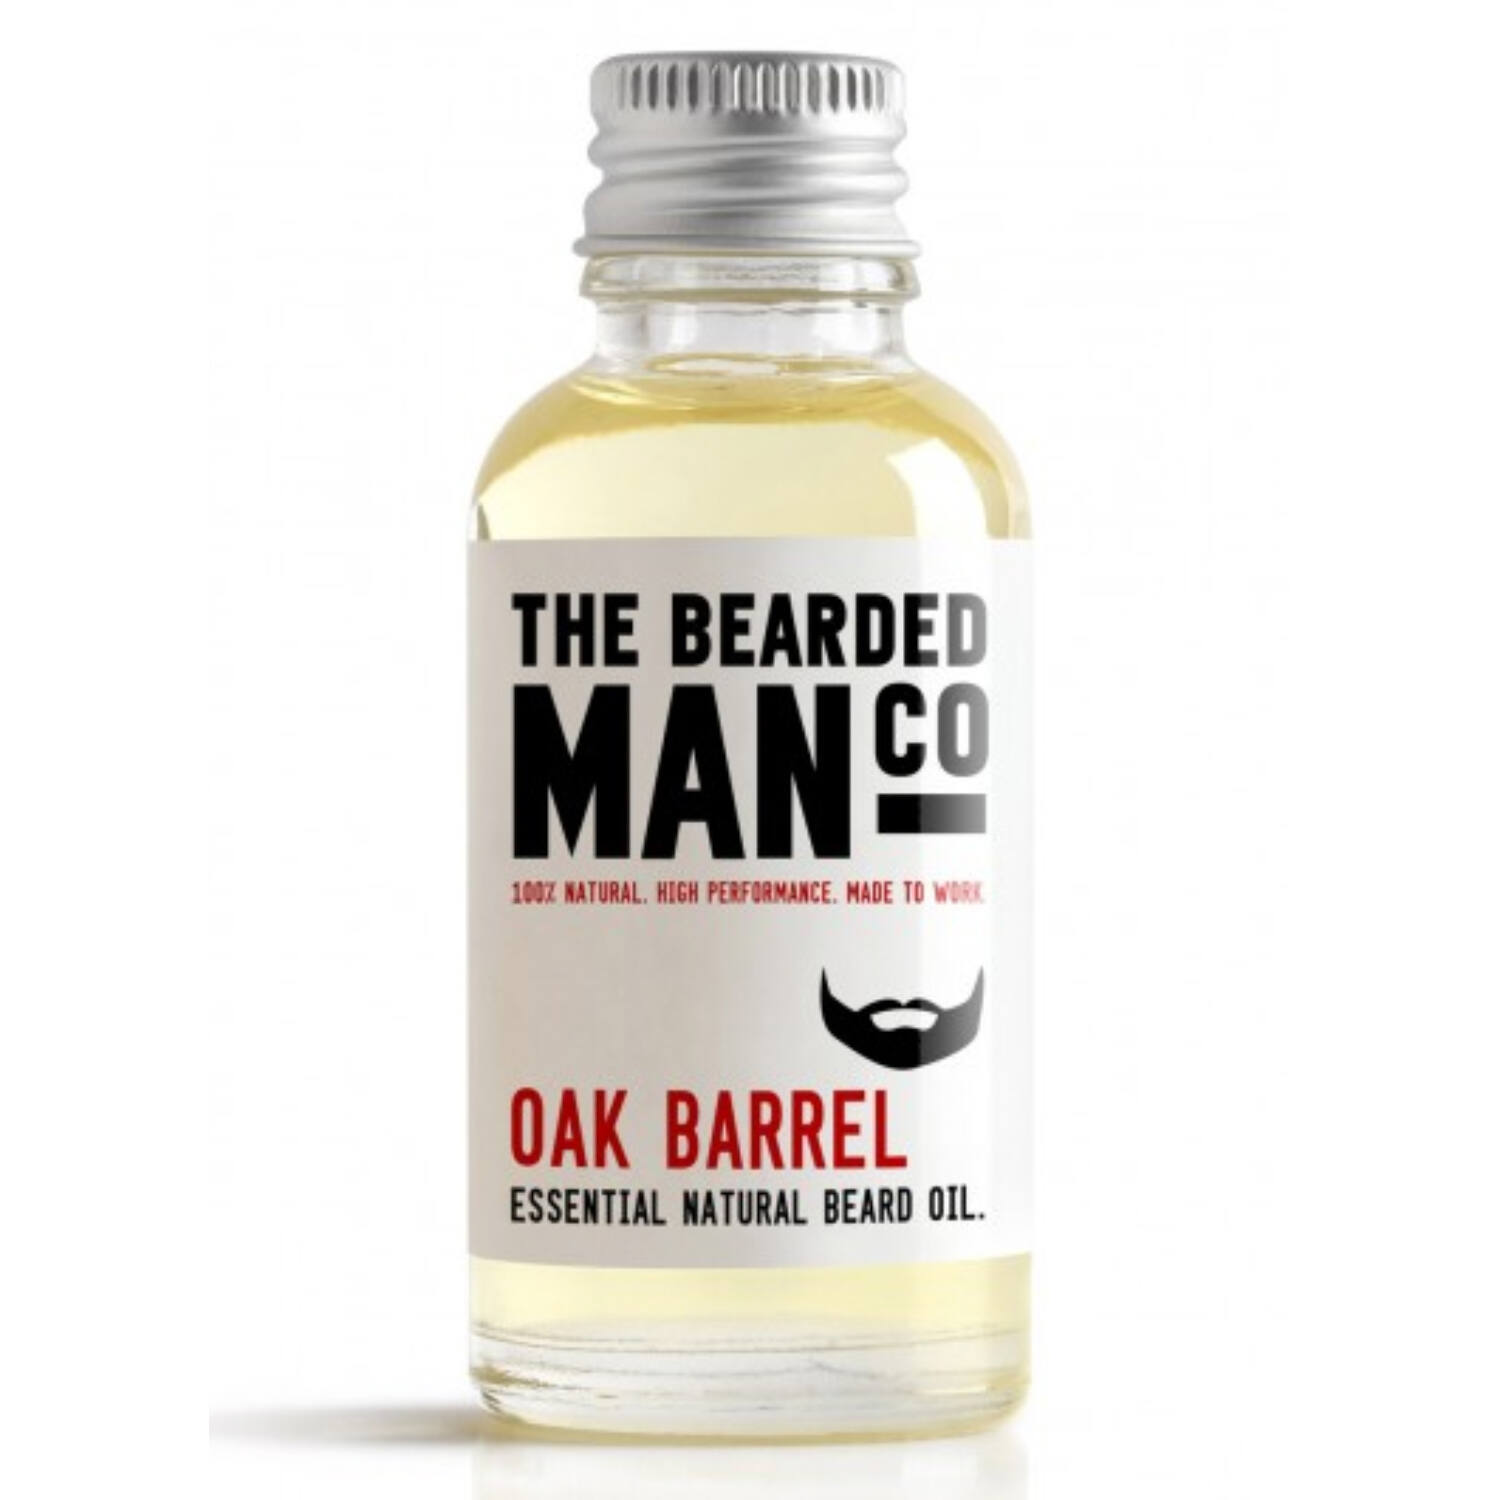 the bearded man company oak barrel szakállolaj 30ml